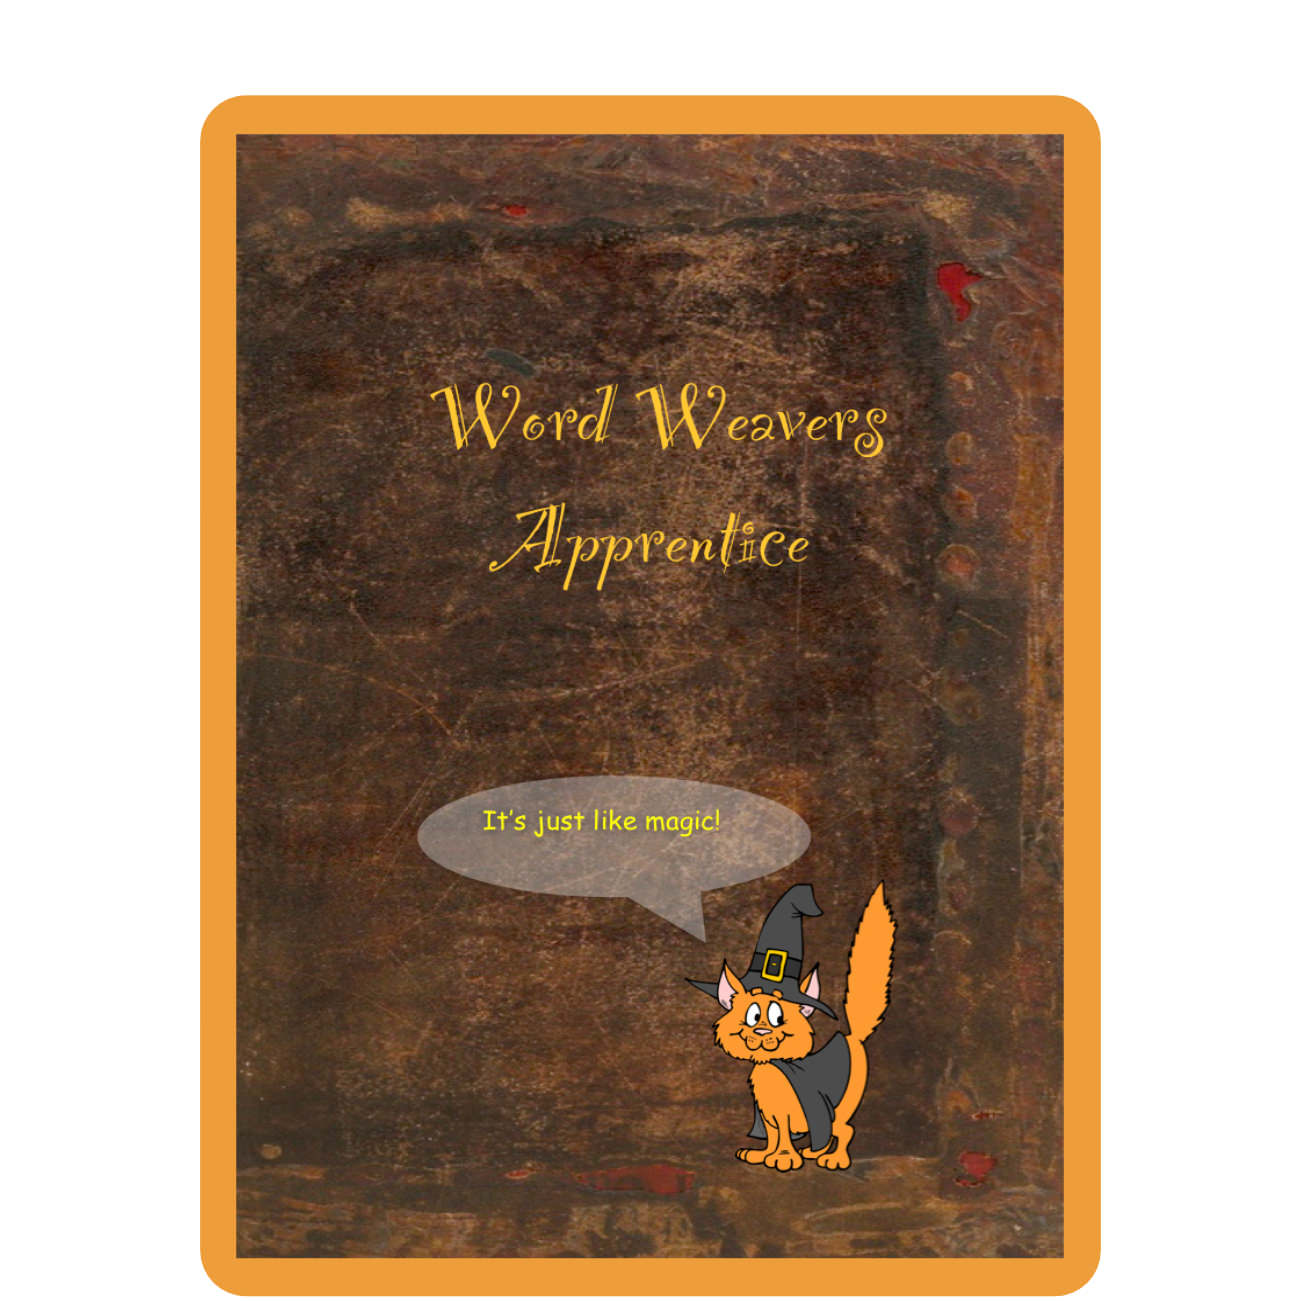 Word Weavers Apprentice - Fees from £115Would you like to begin an exciting and magical journey to discover how to be a Master Word Weaver and use spells to control words? Then this course is for you! You are probably aged around 8 or 9.